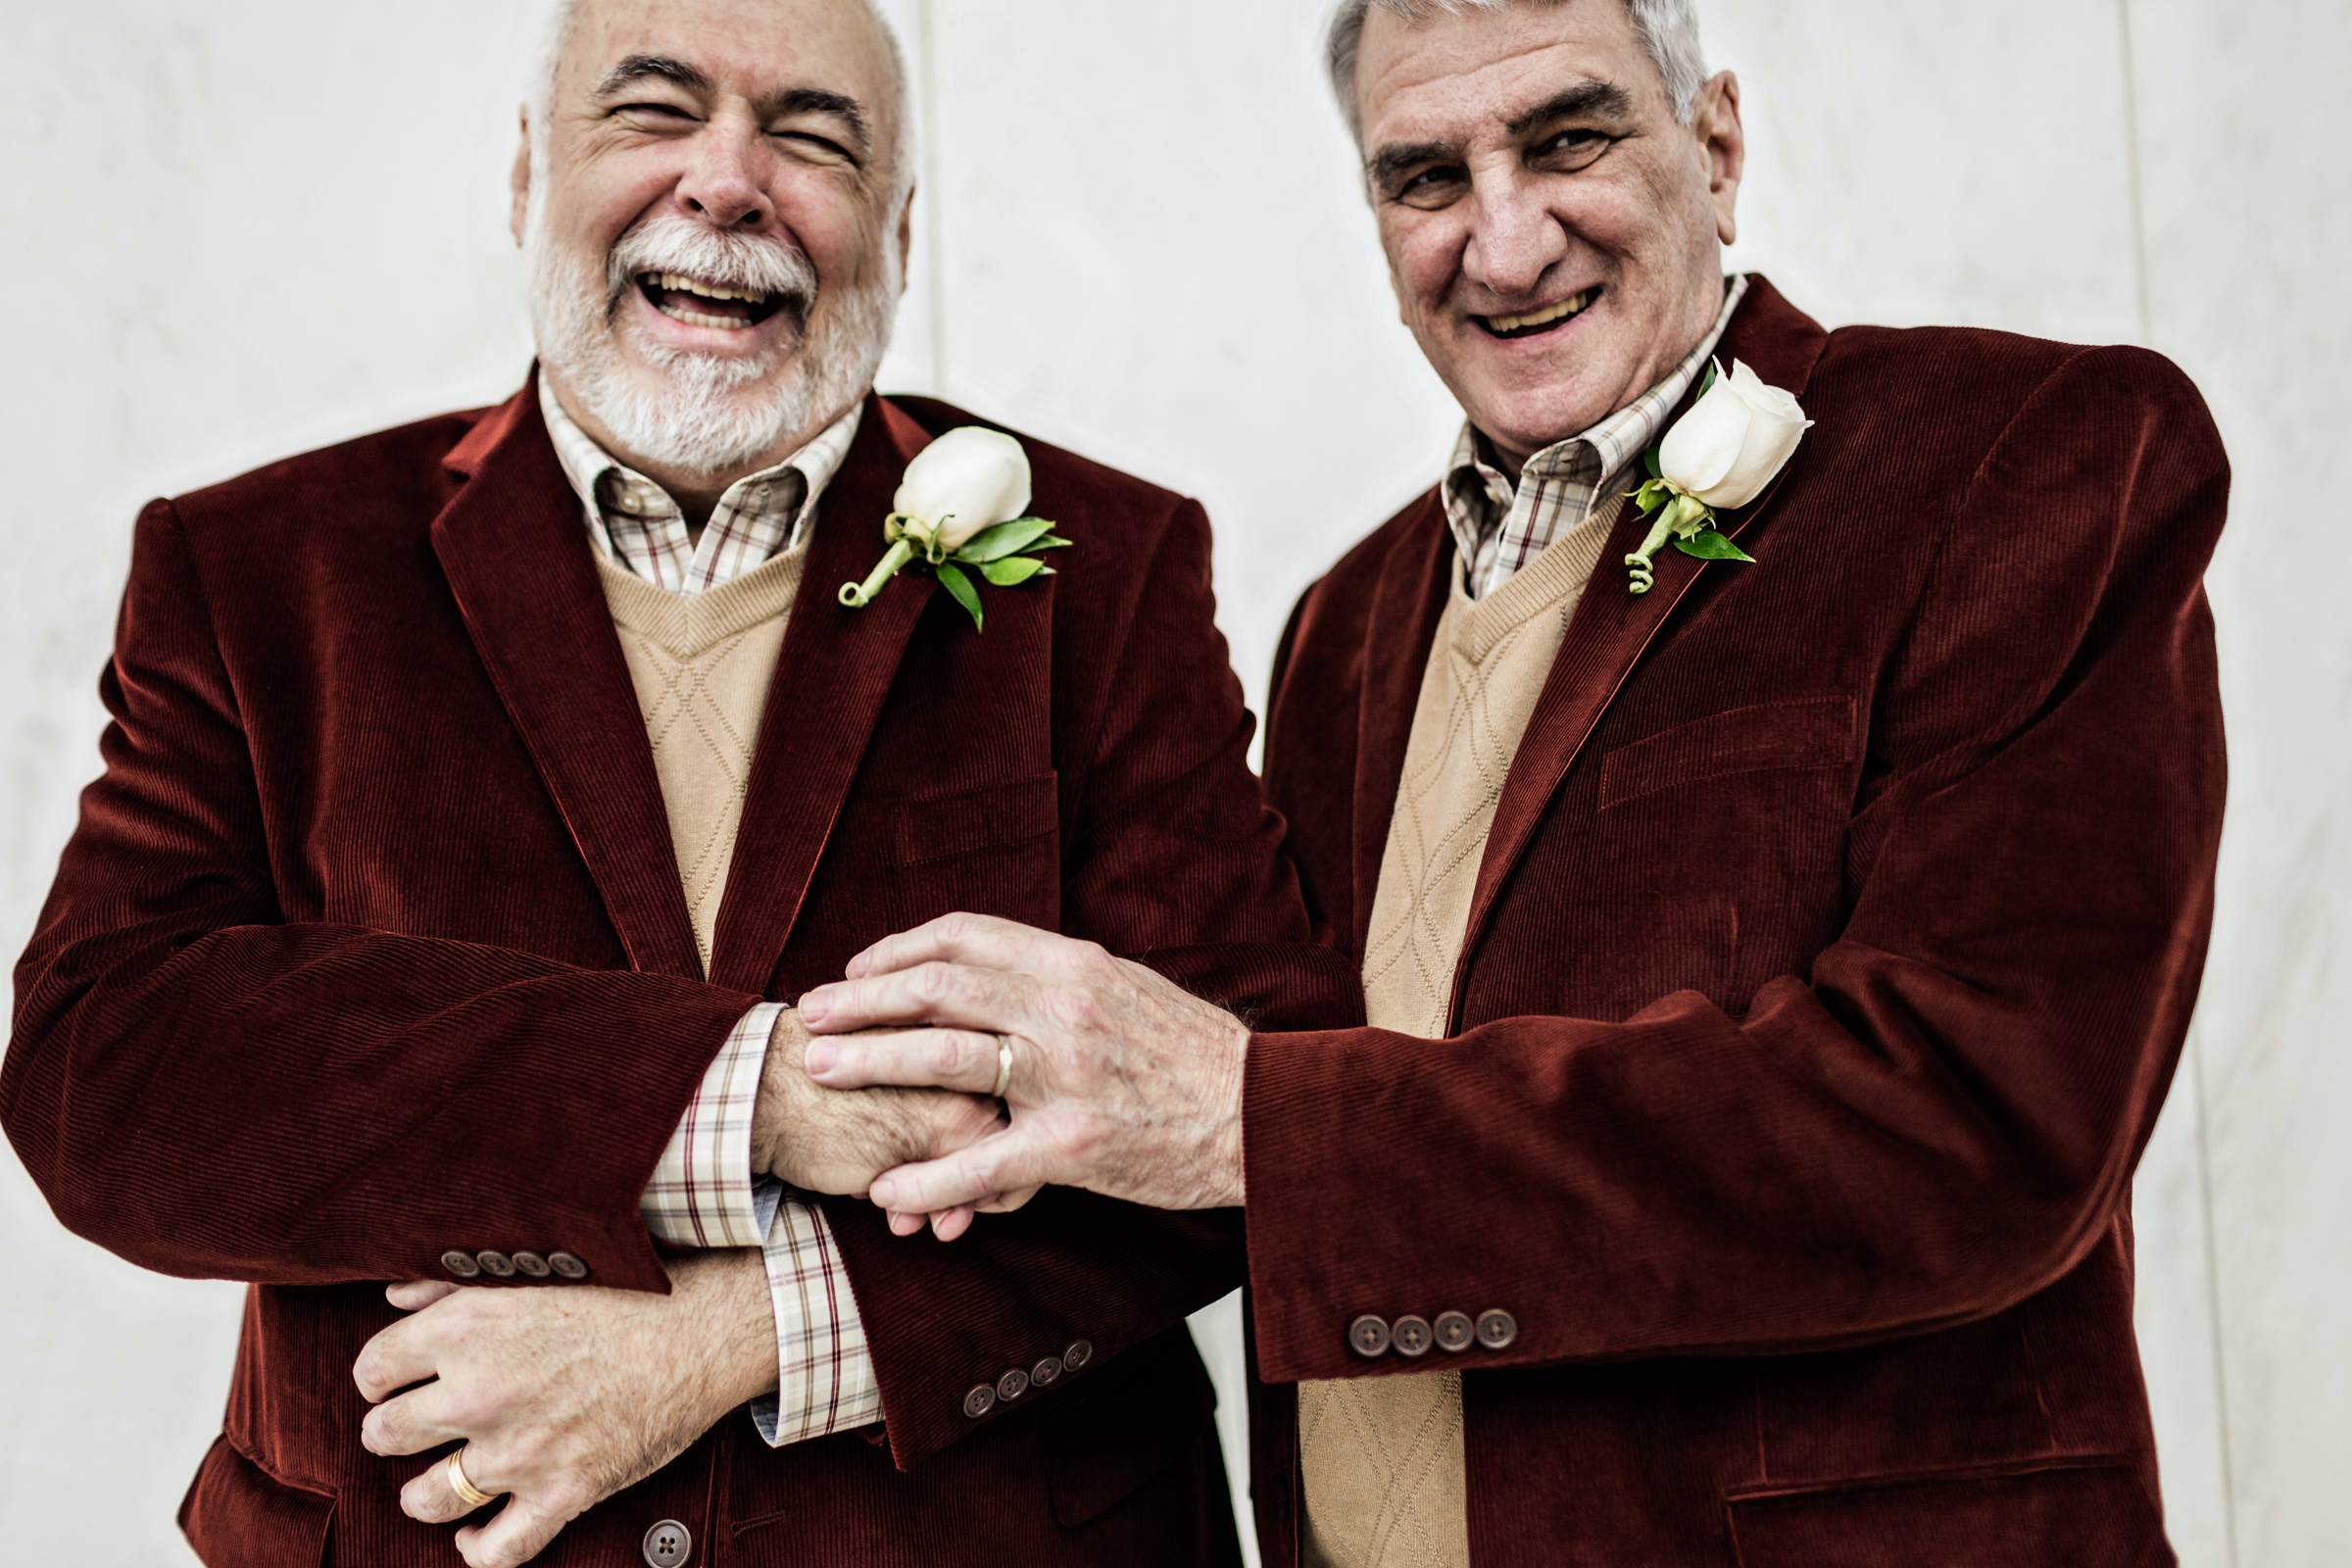 Grooms in matching clothing - photo by JAGstudios